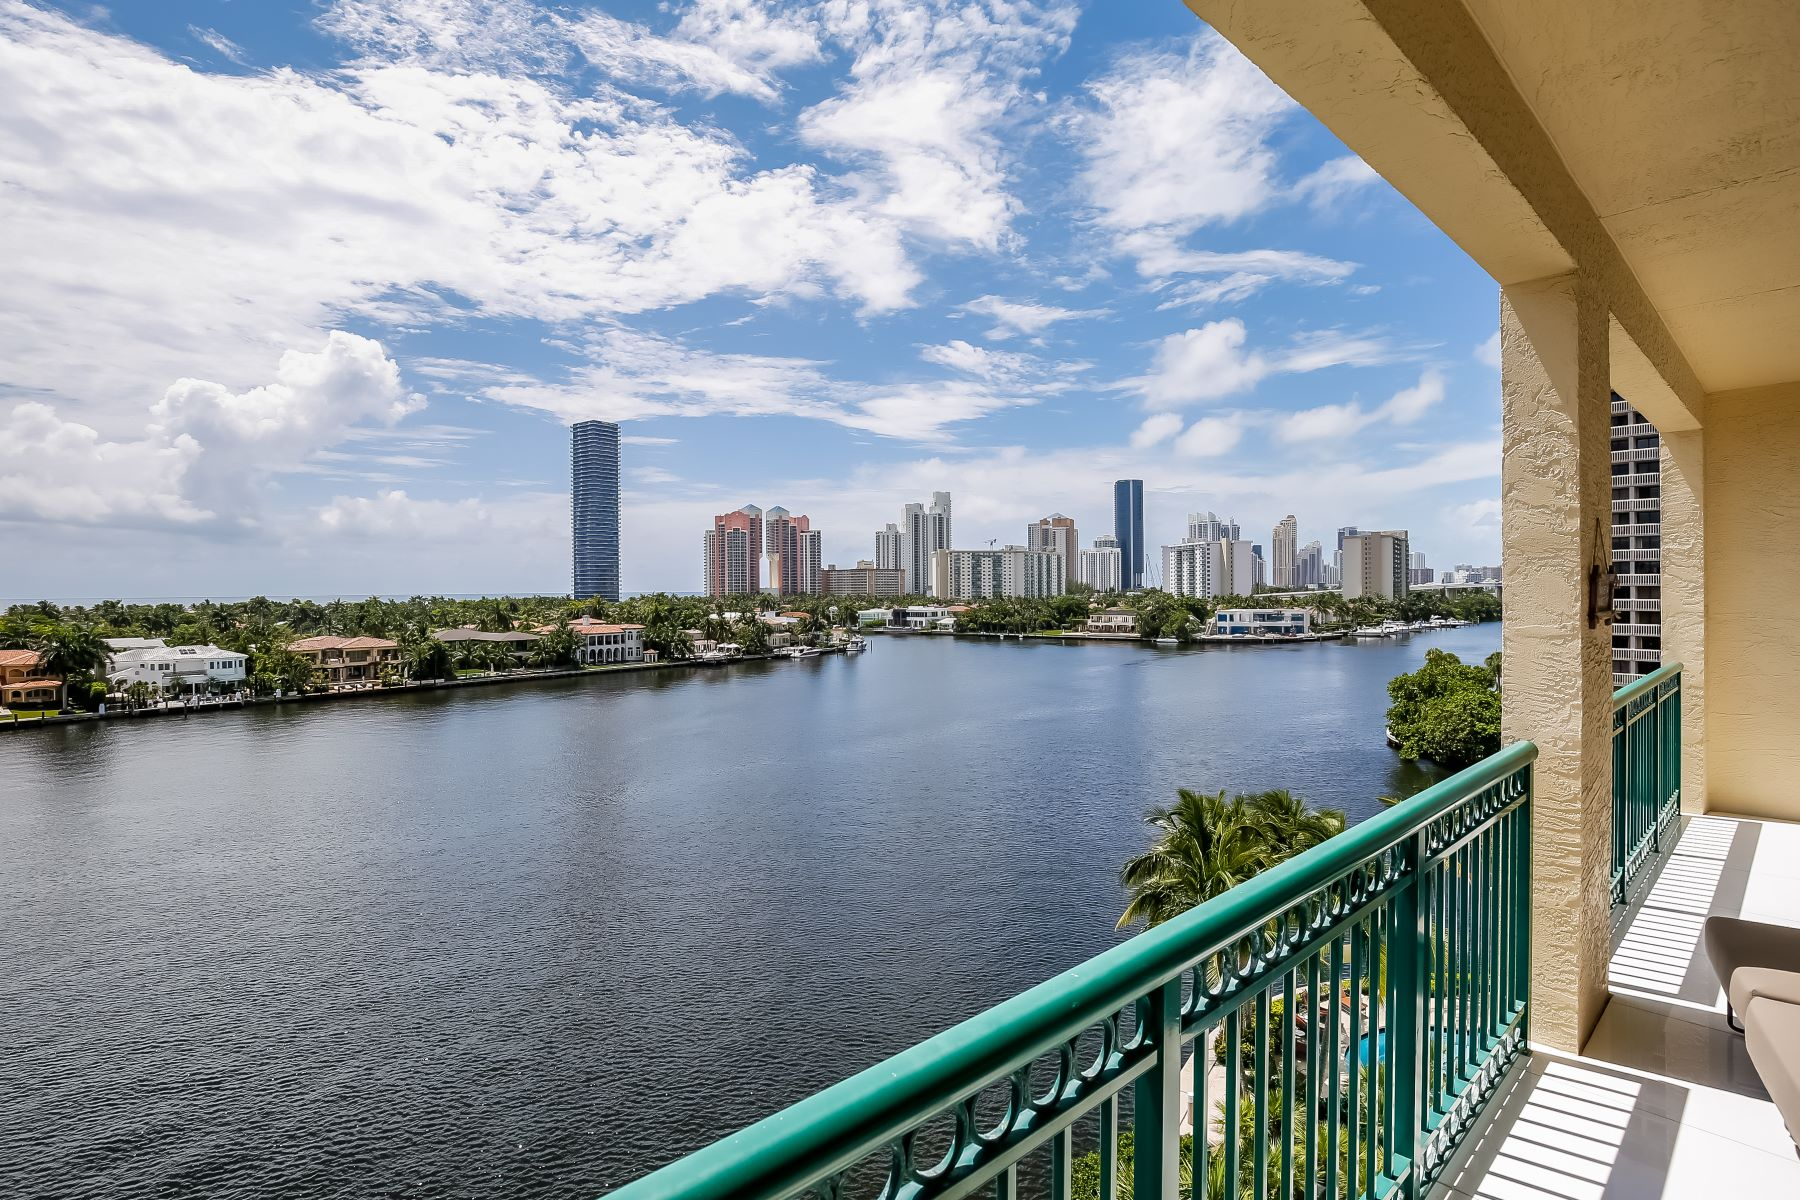 Condominiums for Sale at 19925 Ne 39th Pl #602 19925 Ne 39th Pl 602, Aventura, Florida 33180 United States